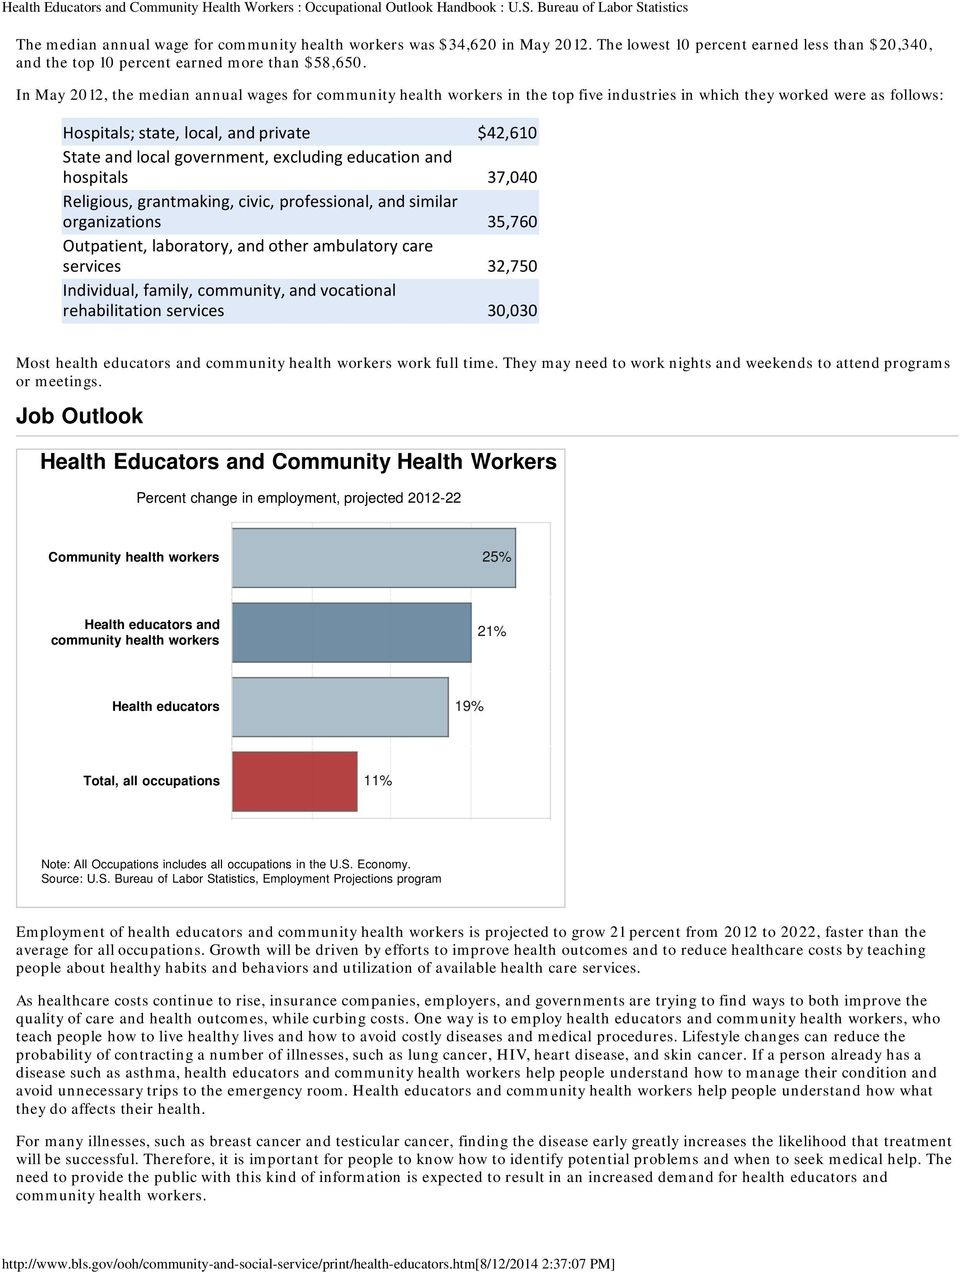 government, excluding education and hospitals 37,040 Religious, grantmaking, civic, professional, and similar organizations 35,760 Outpatient, laboratory, and other ambulatory care services 32,750